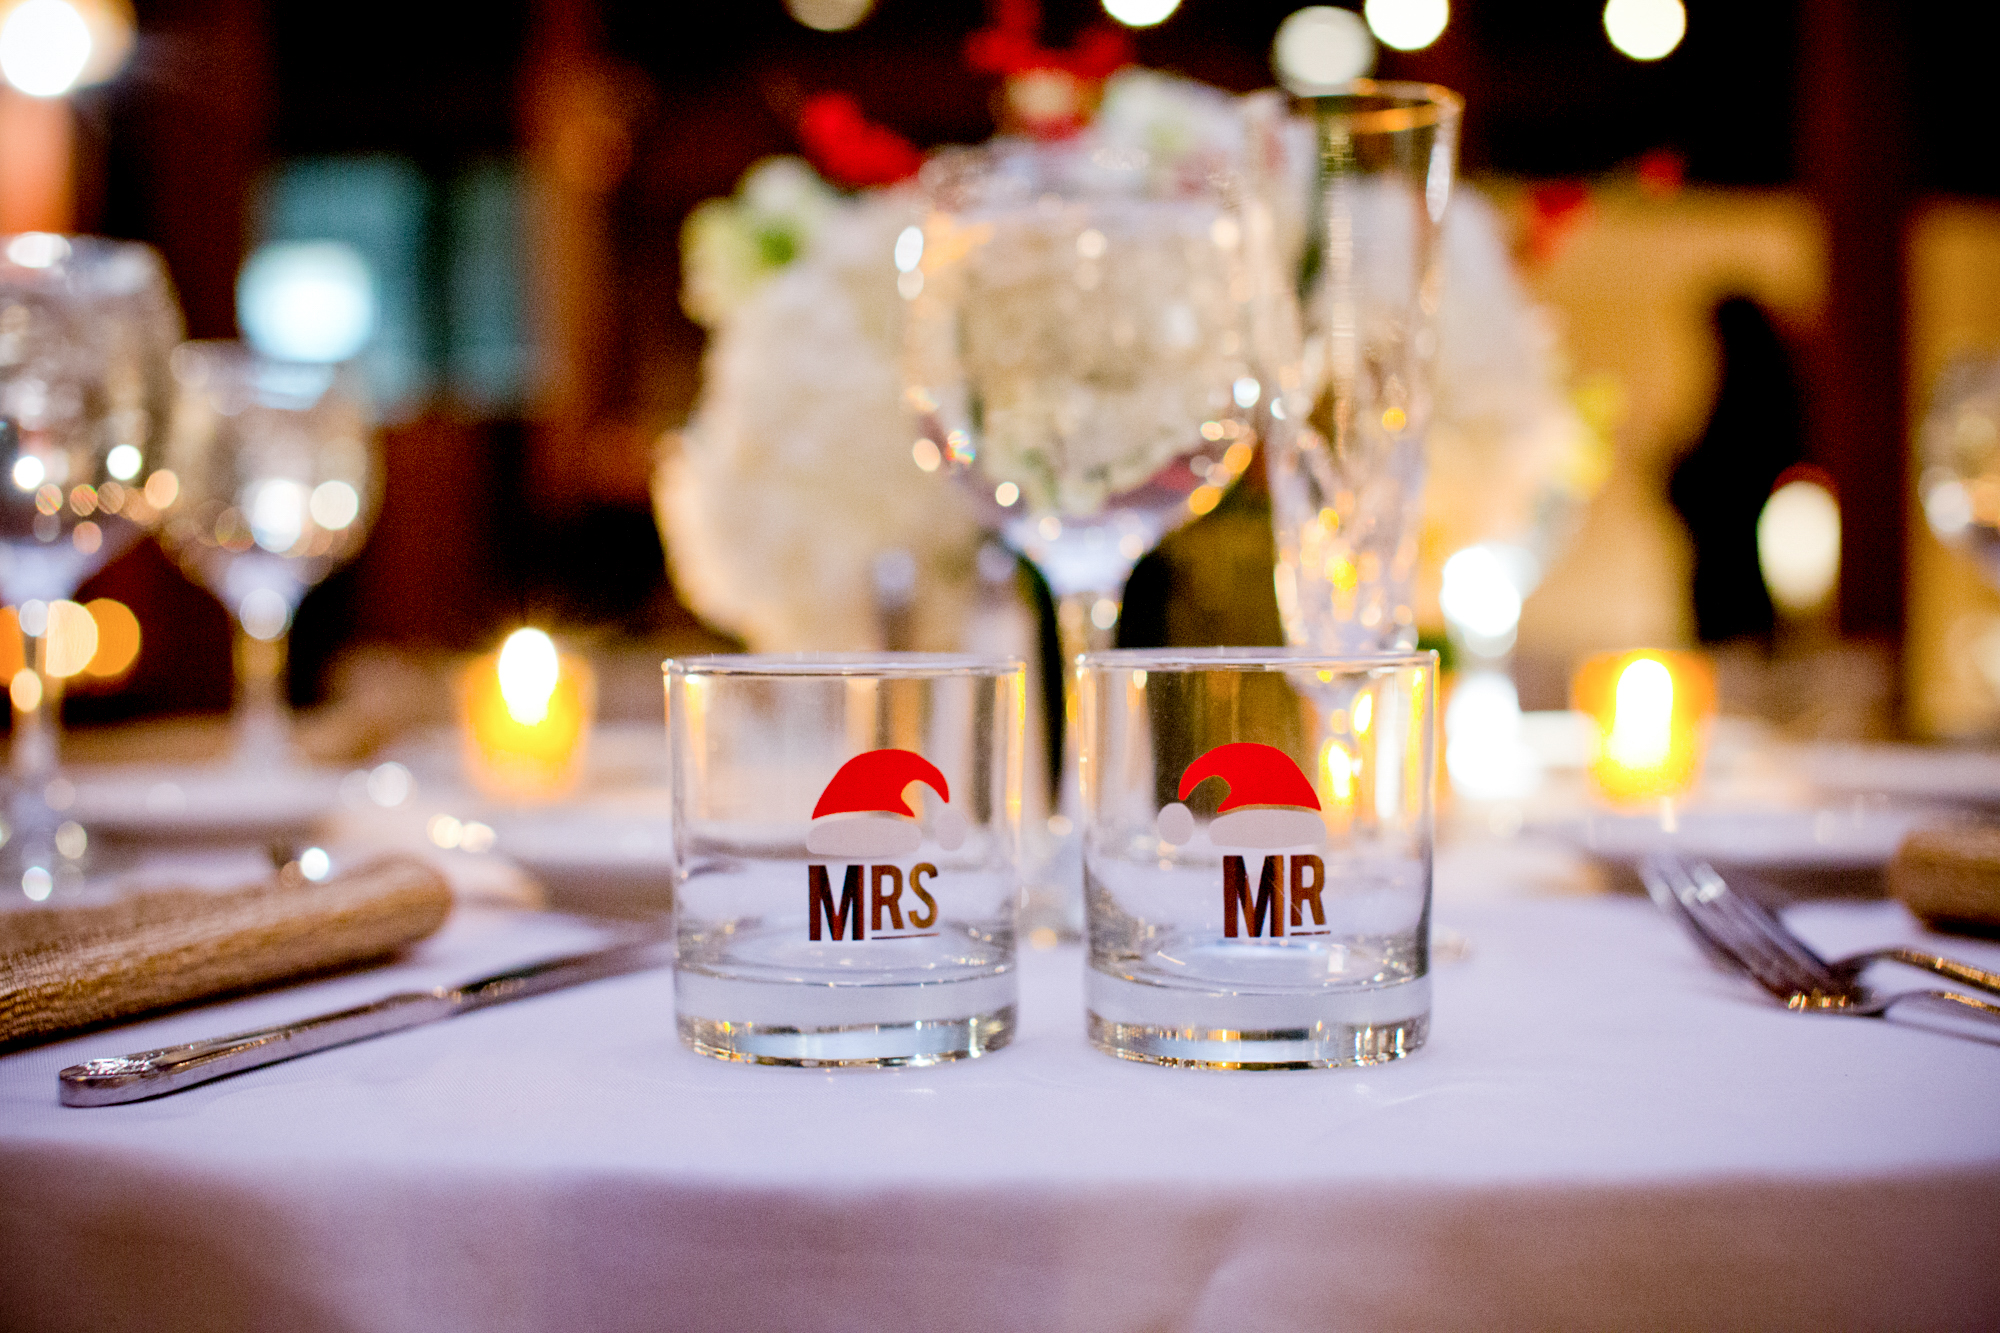 075_CarlyGaebe_SteadfastStudio_WeddingPhotography_NewYorkCity_LongIslandCity_MetropolitanBuilding_Winter_Romantic_Bride_Groom_MrMrs_TableDecor_Glases_Santa_Vintage.jpg